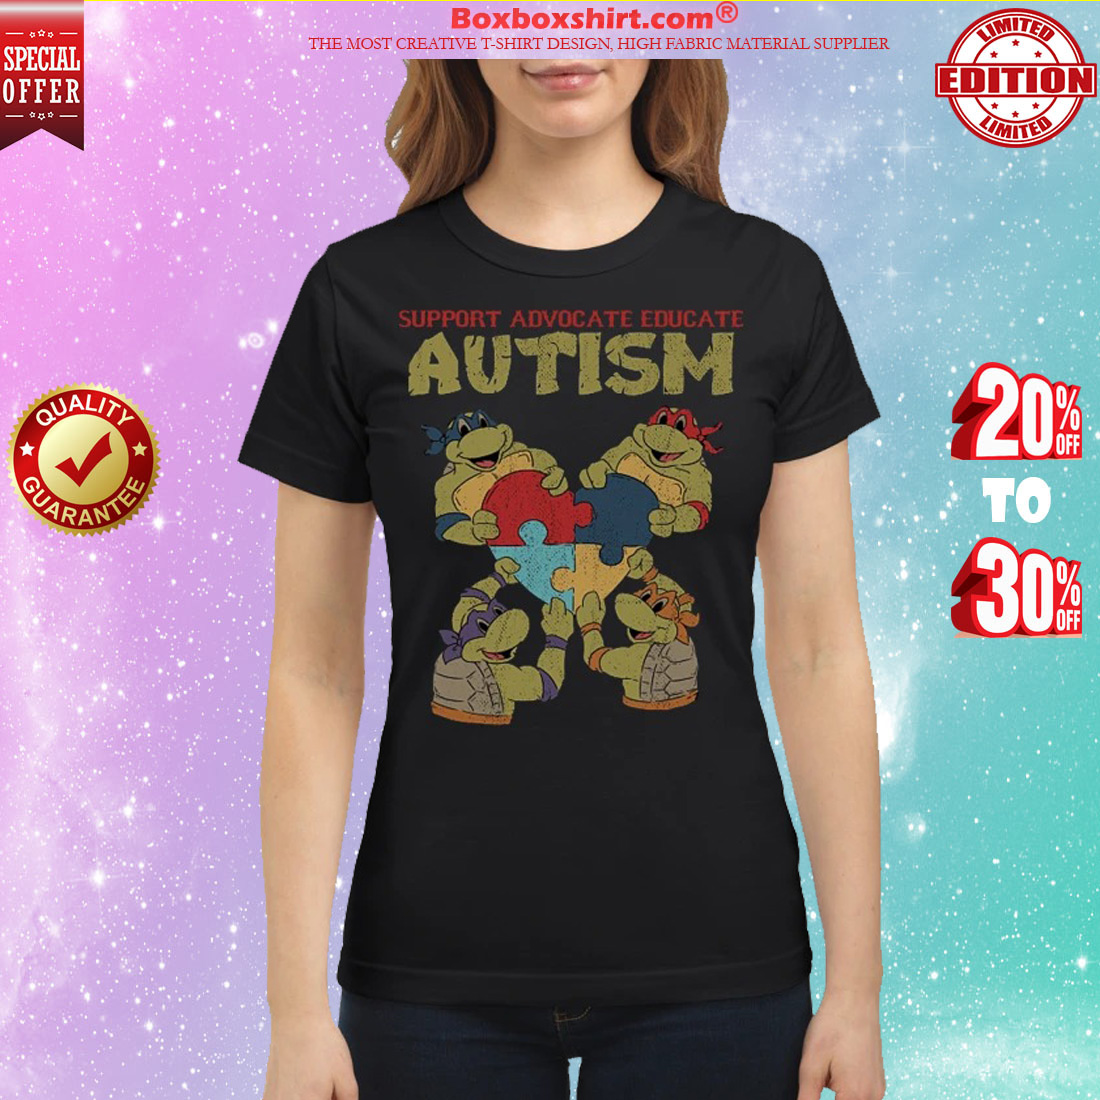 Ninja turtle support advocate educate autism classic shirt